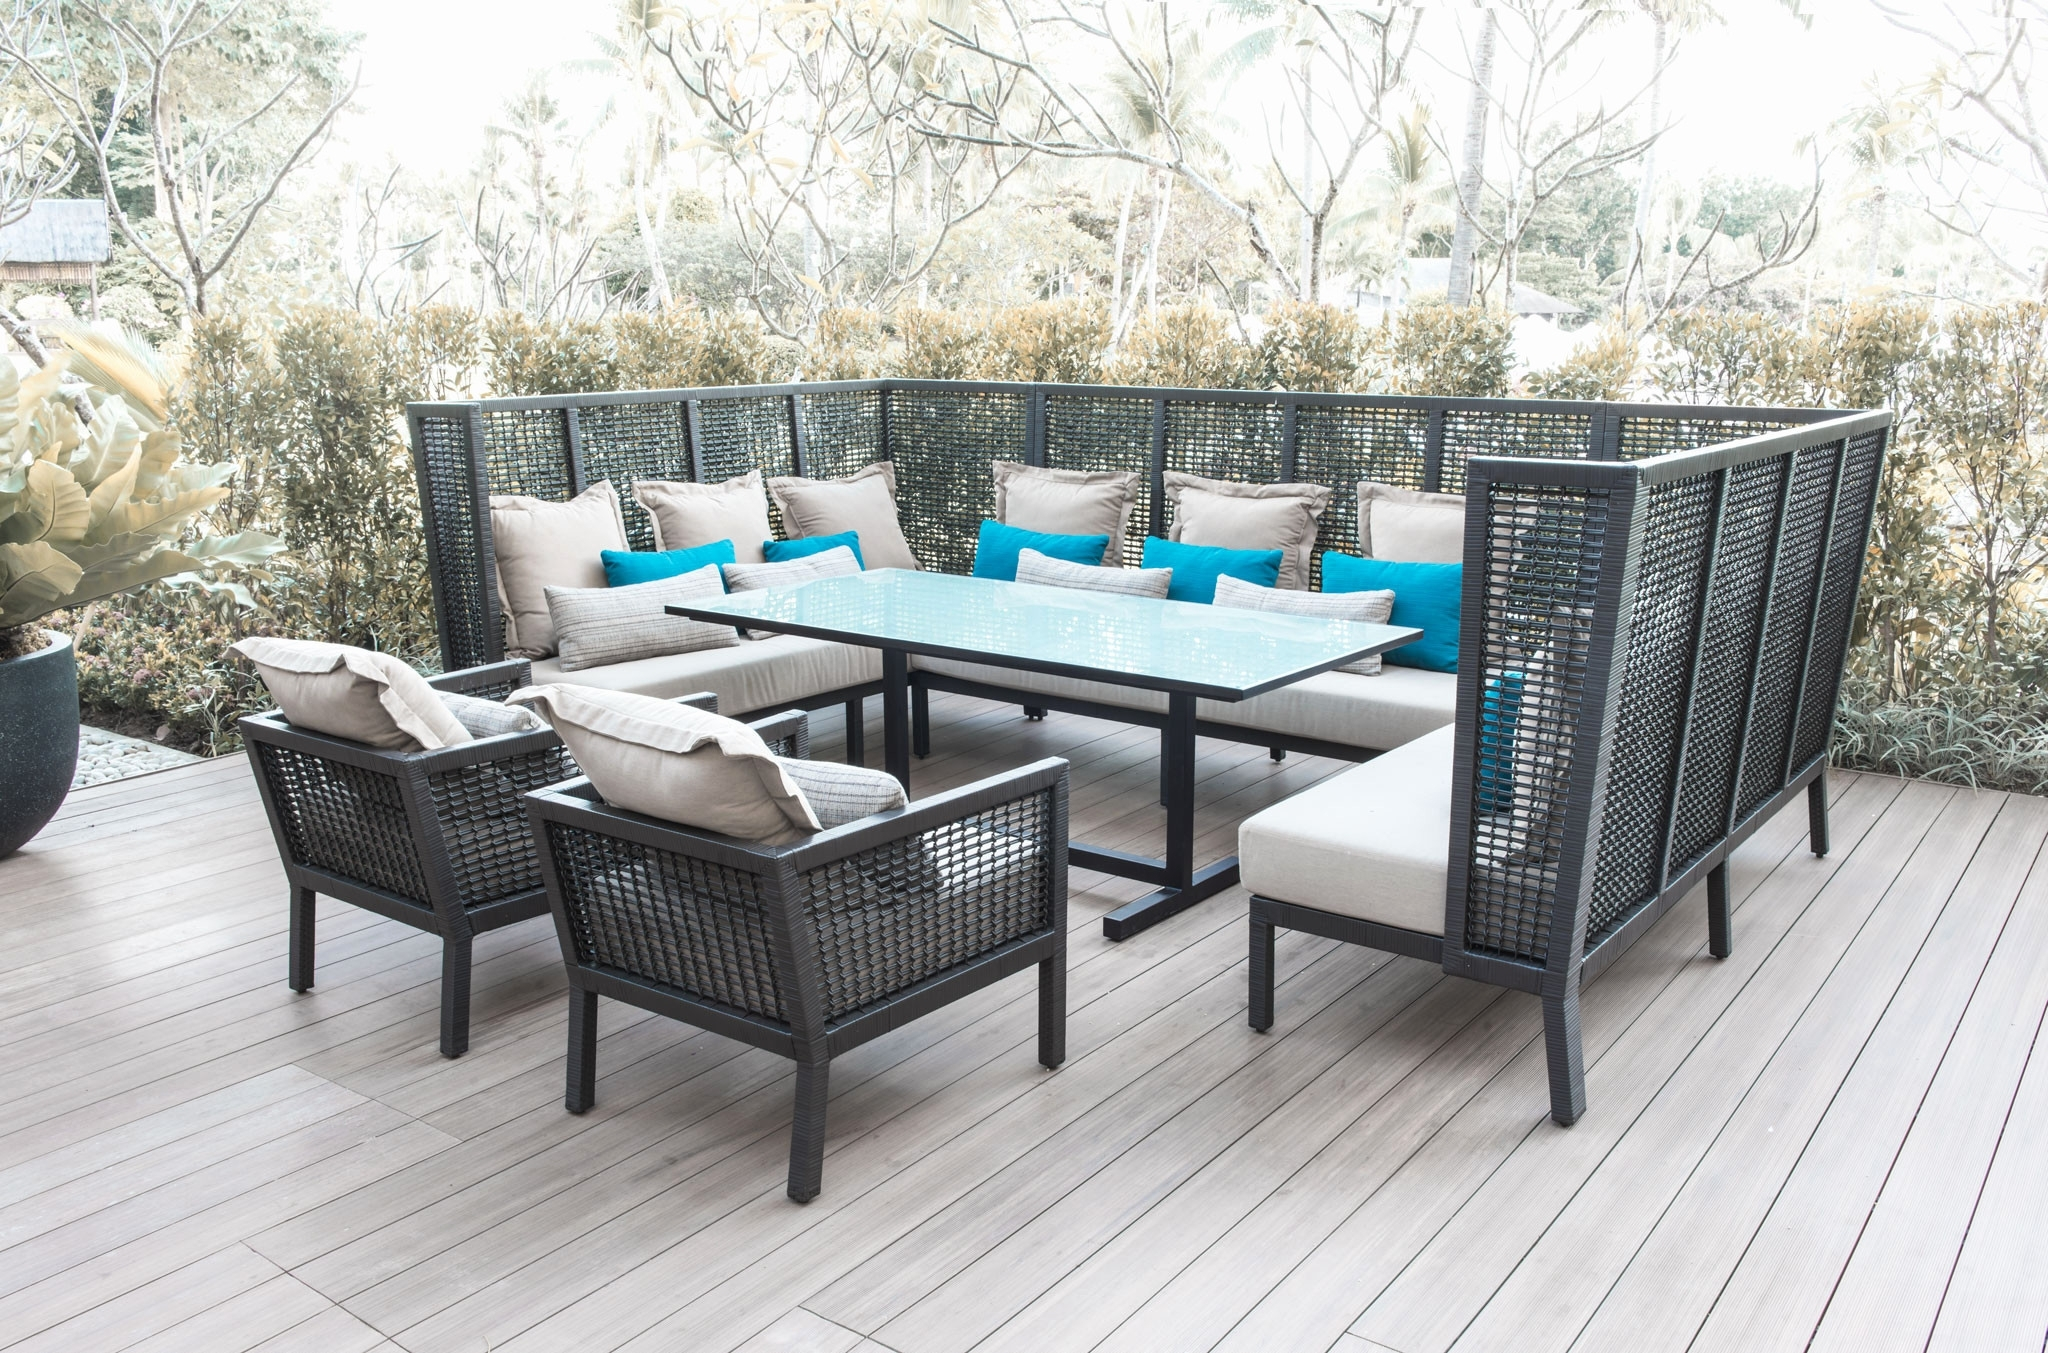 Commercial Outdoor Umbrellas Elegant Best For High Wind Areas This Throughout Most Popular Patio Umbrellas For High Wind Areas (View 11 of 20)